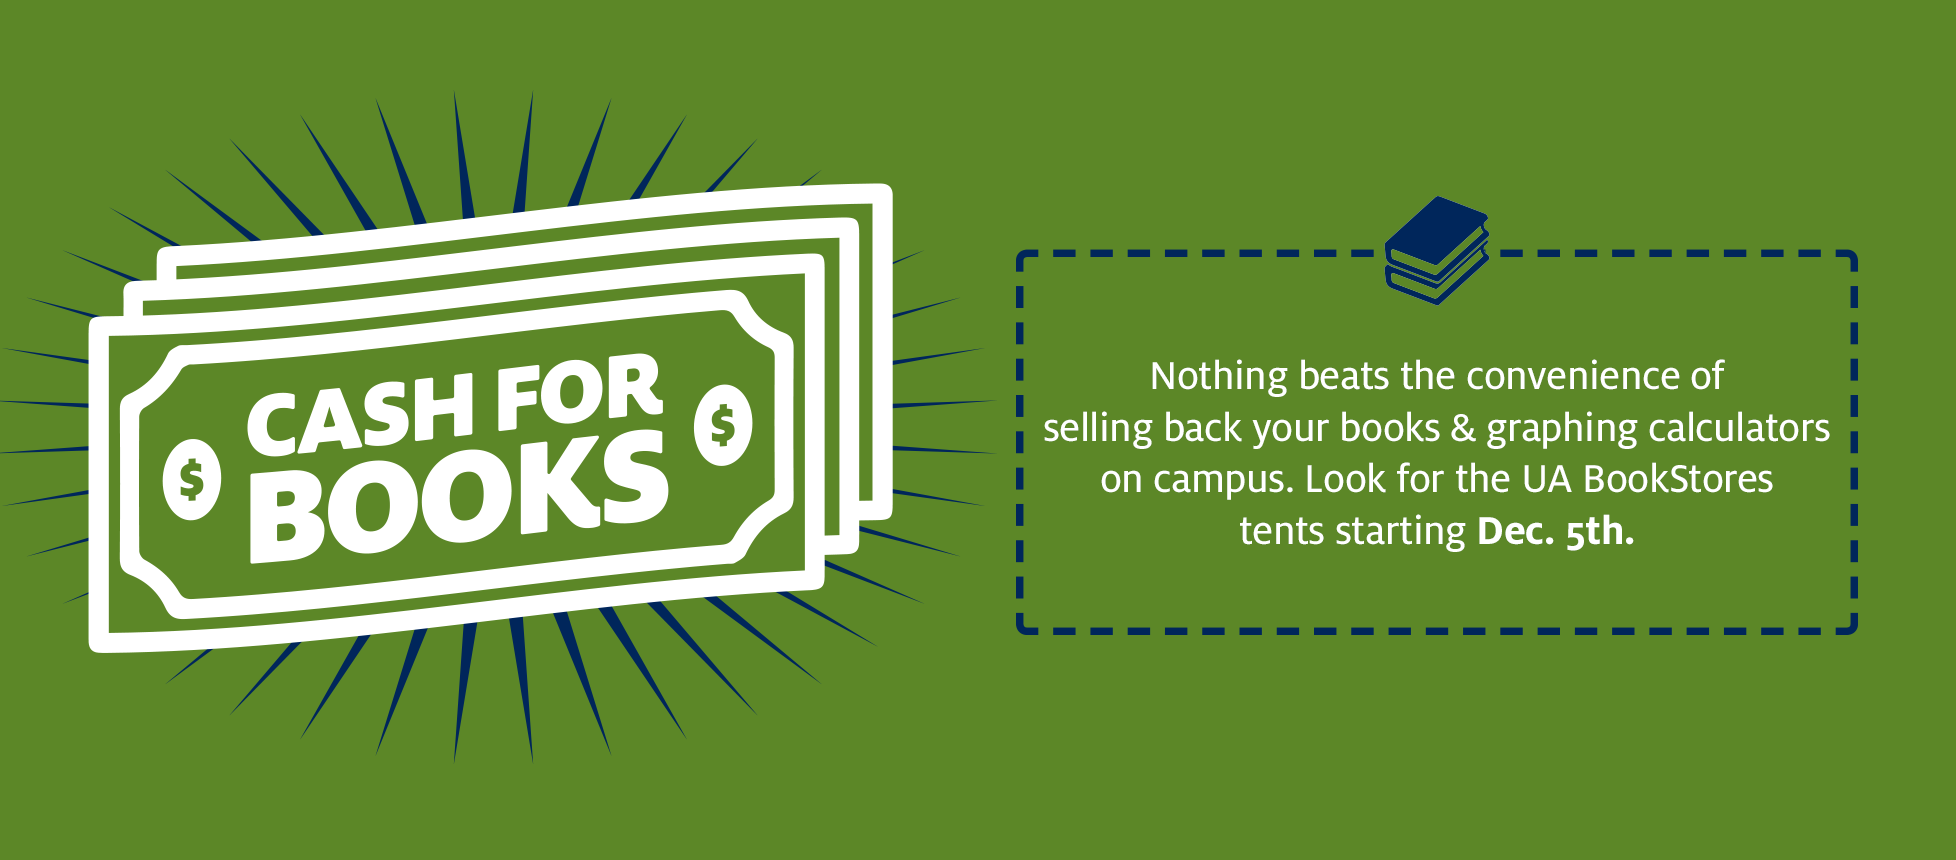 Cash For Books Starting Dec. 5th